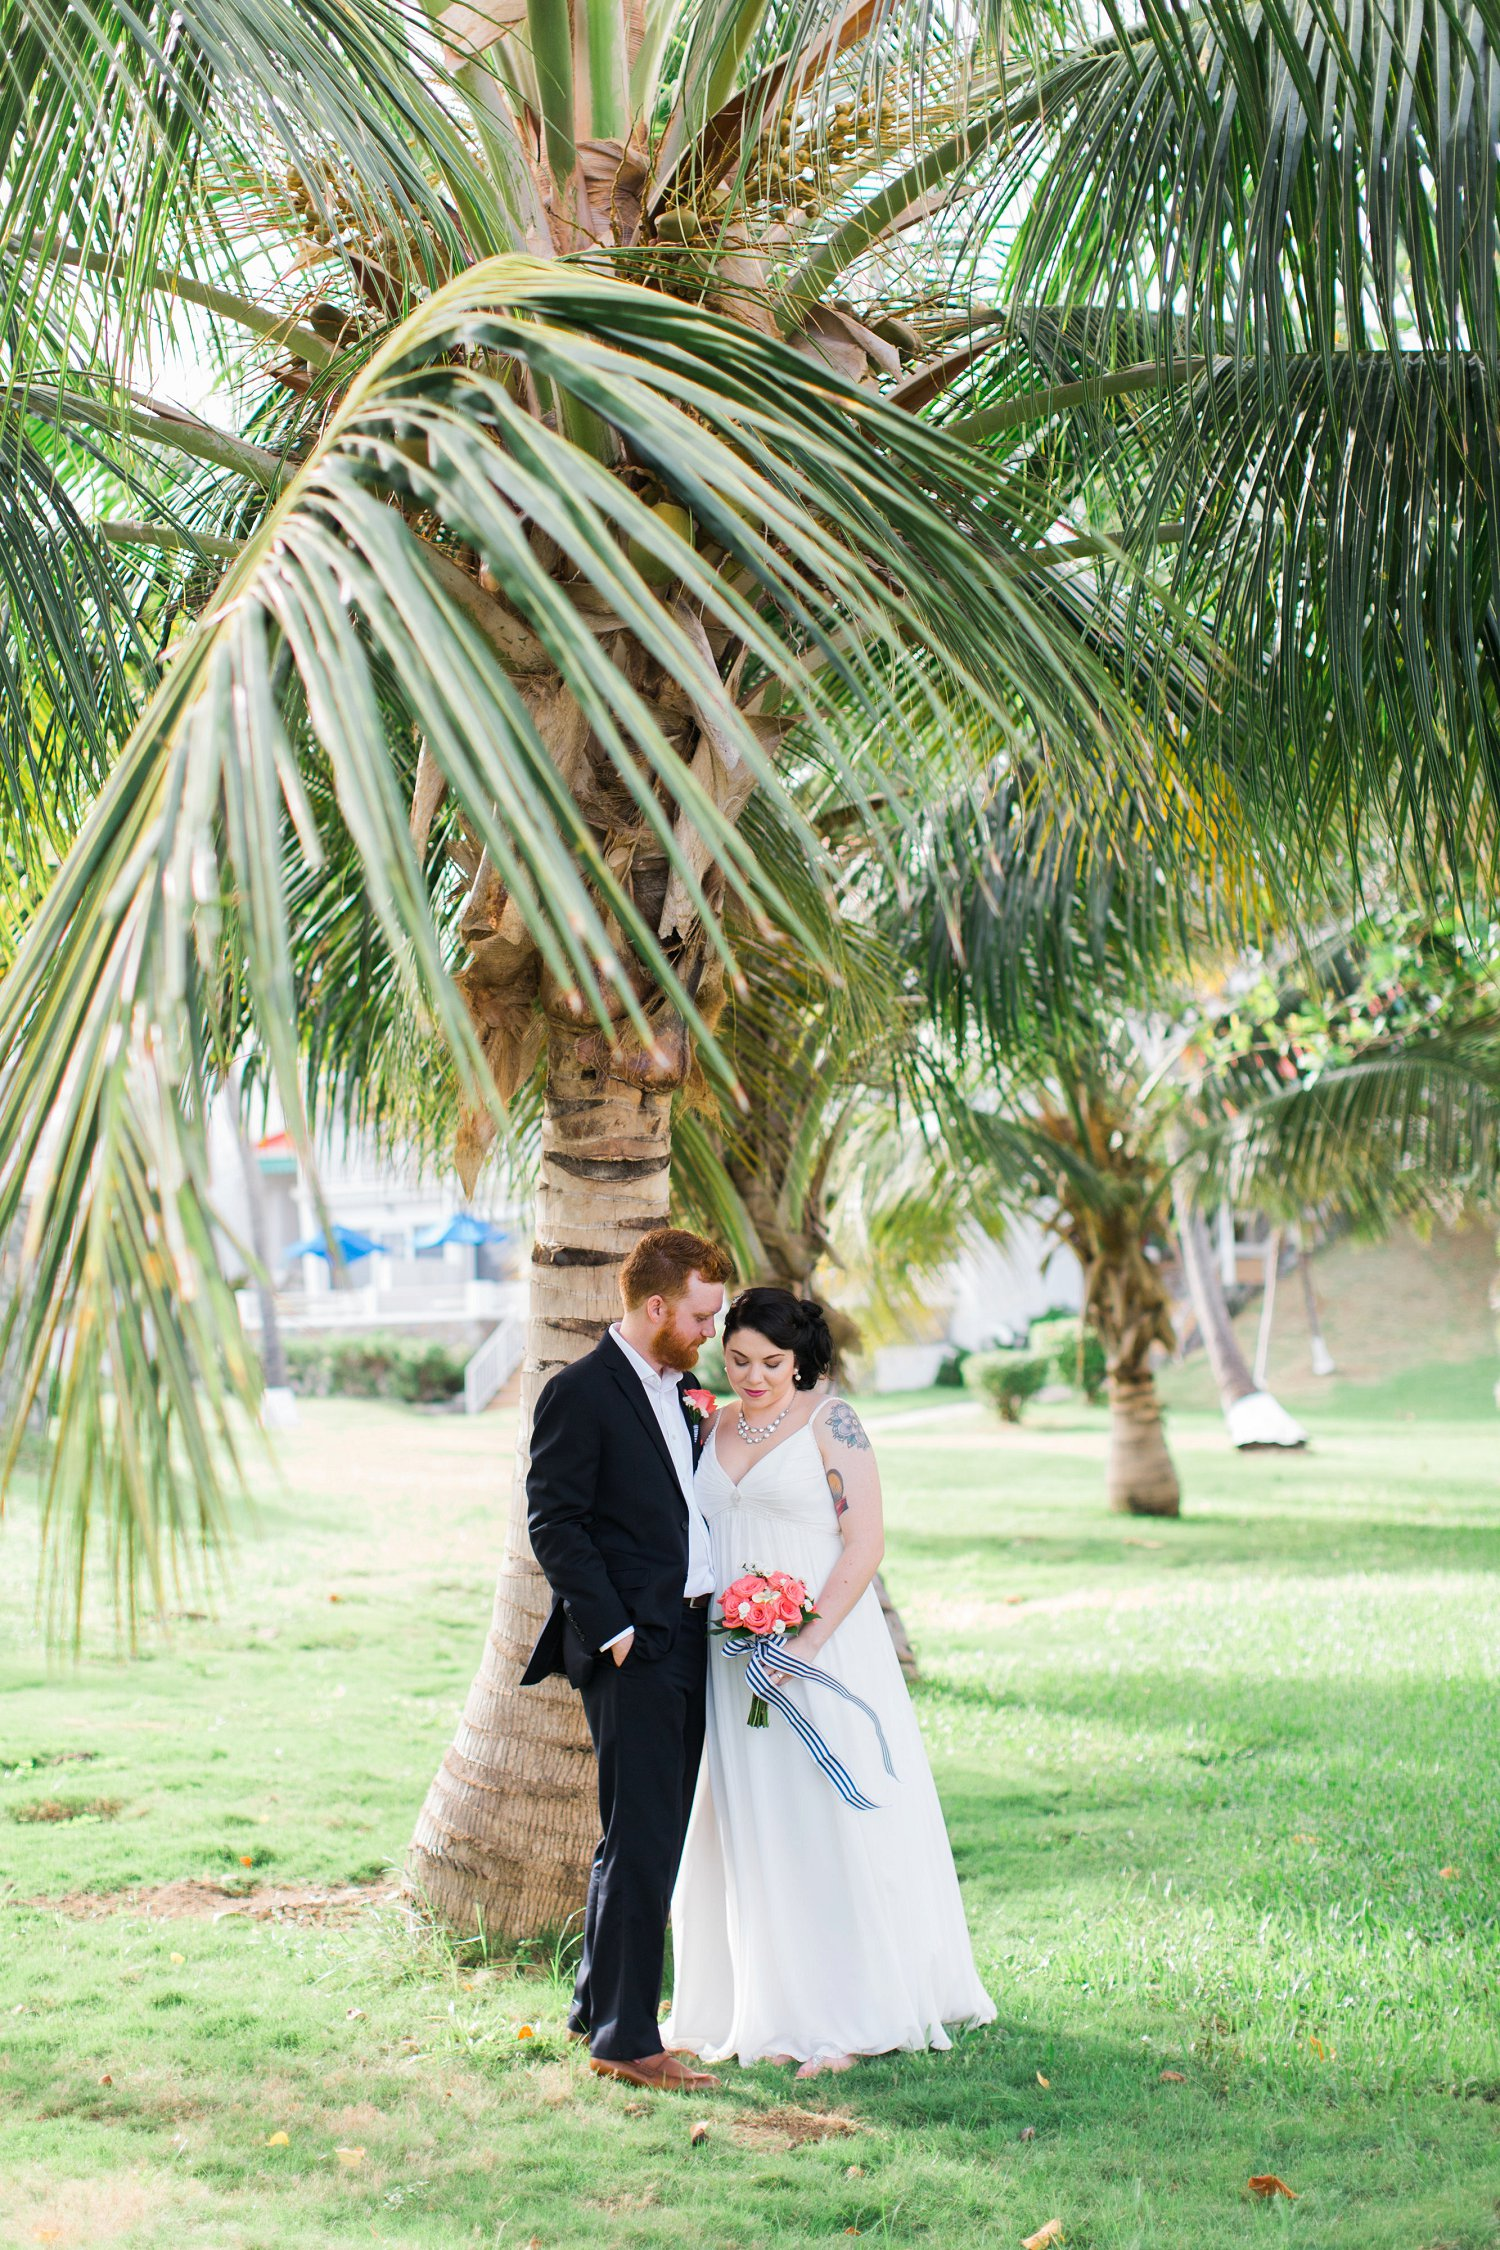 Bride and groom portrait under coconut palm tree at beach wedding in St. Thomas.